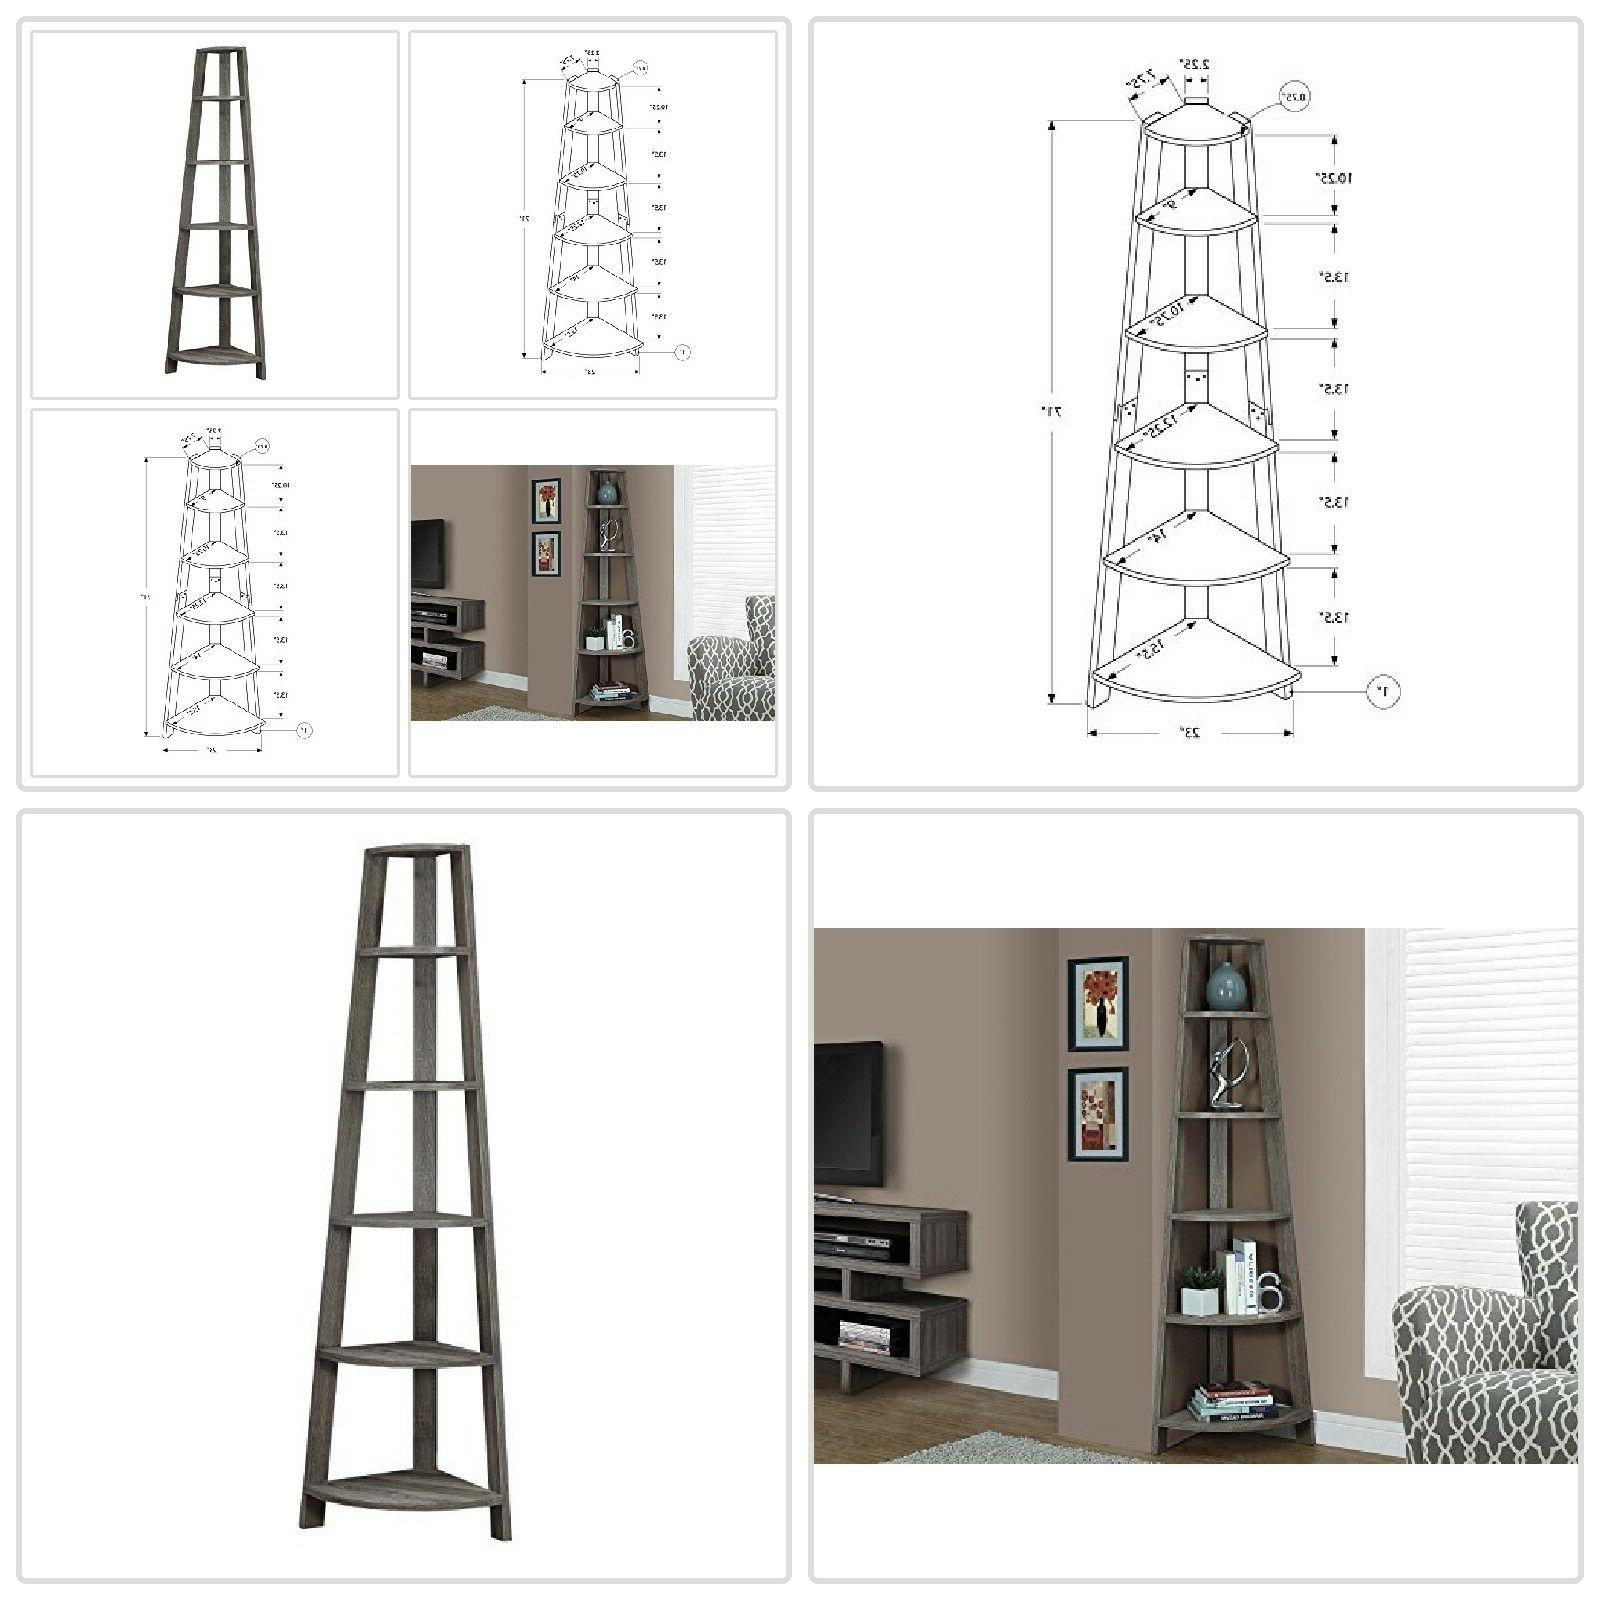 5 Bookcase Leaning Wall Ladder Storage Display